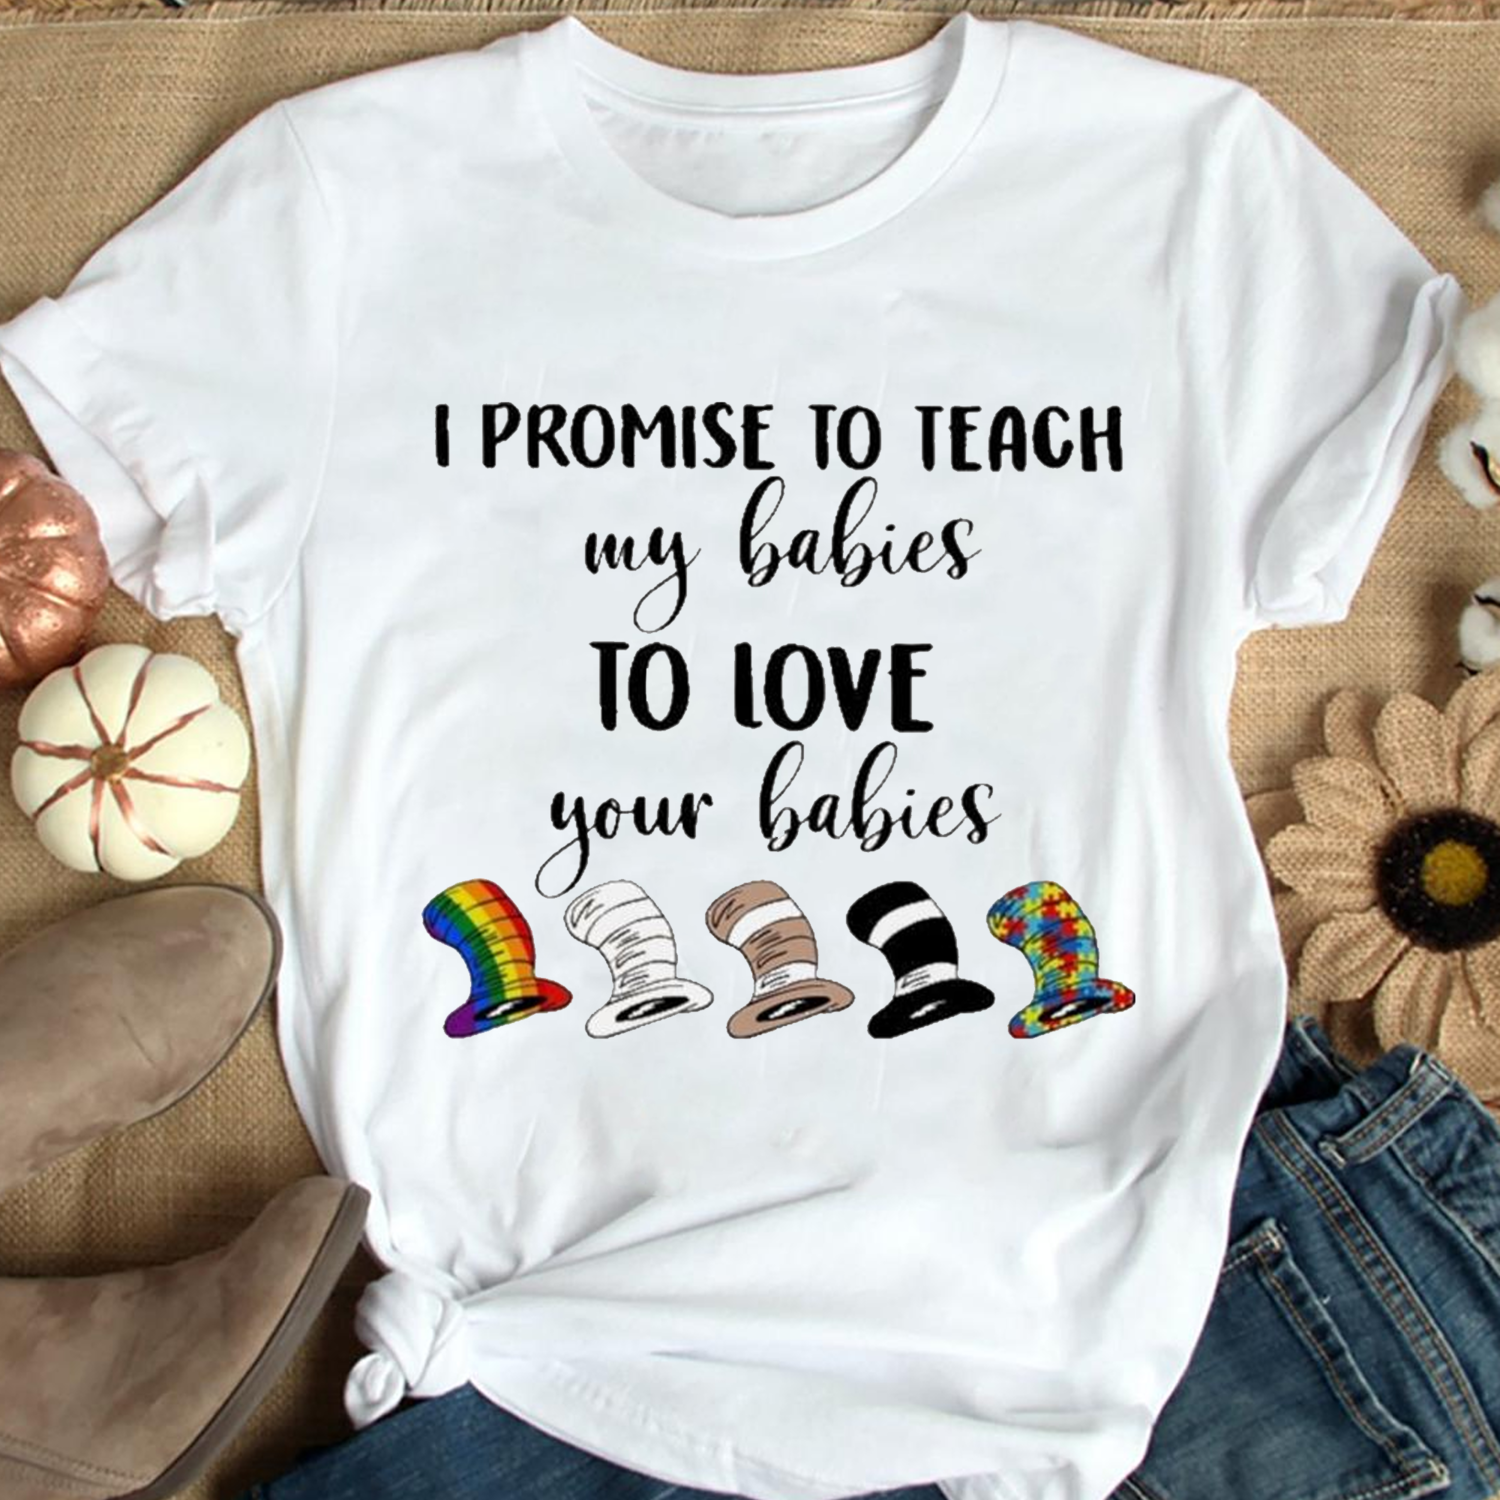 Official I Promise To Teach My Babies To Love Your Babies Lgbt Autism Hat Dr Seuss Trending Unisex Hoodies Sweatshirt Long Sleeve V Neck Kid T Shirt